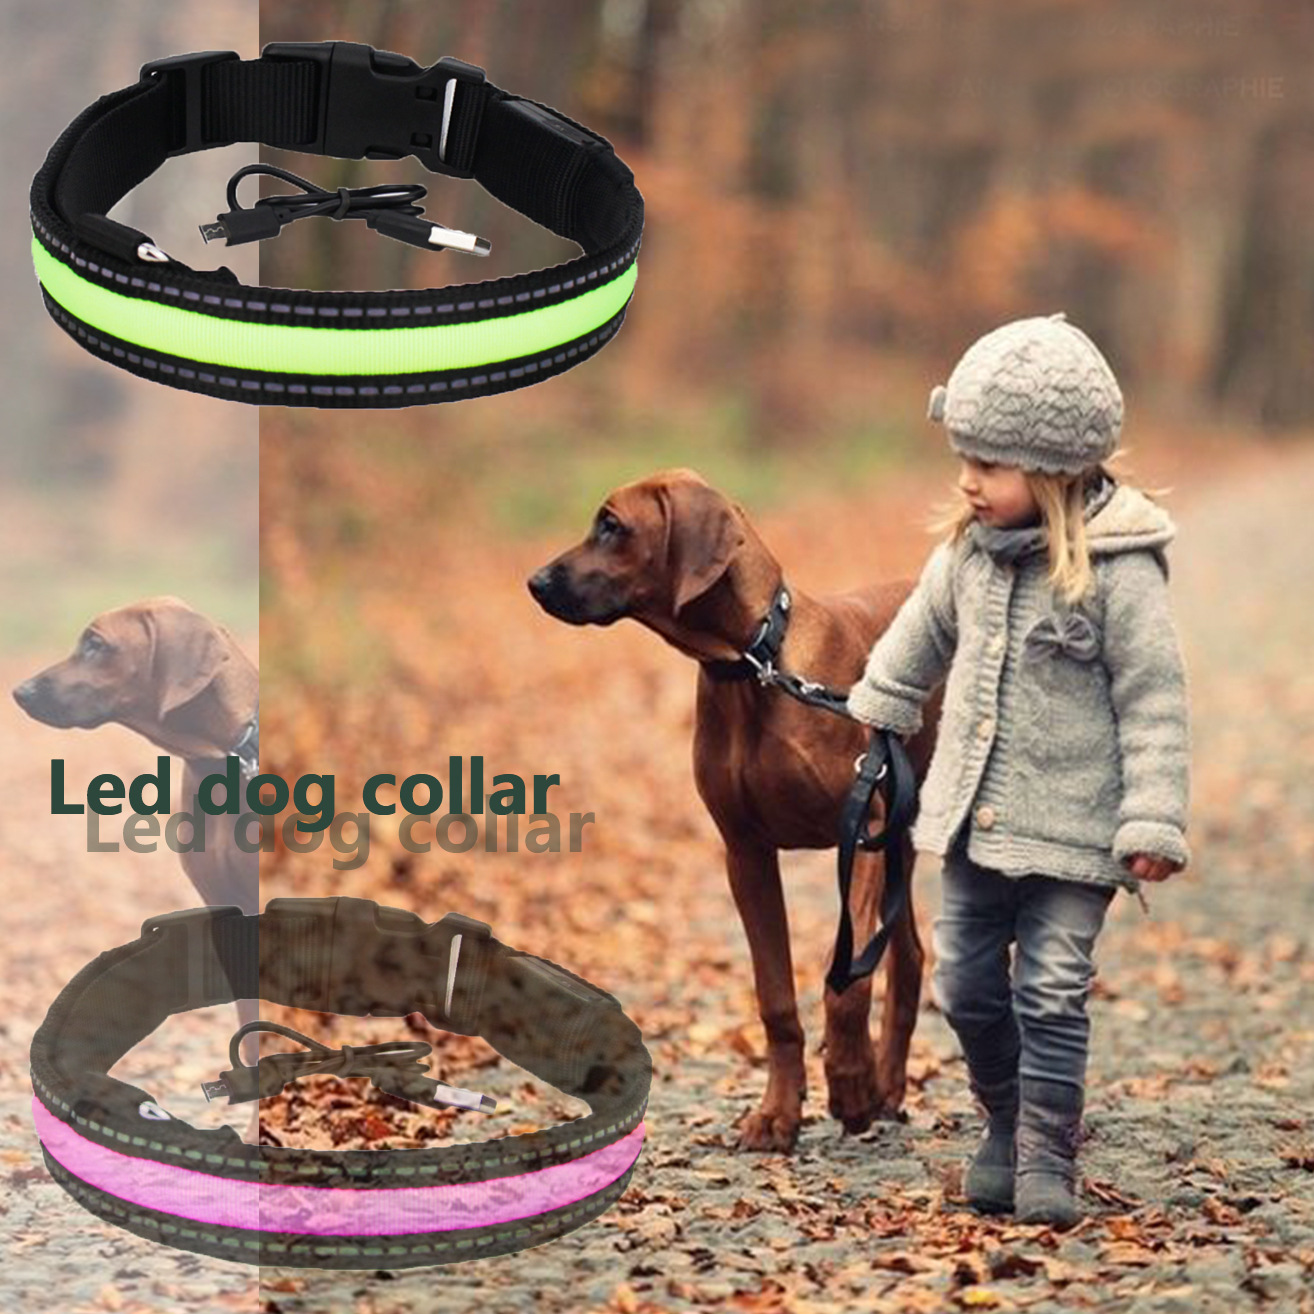 LED Dog Neck Ring Reflective Waterproof Pure Nylon Chargeable Luminous Collar Teddy Golden Retriever Bichon Pet Supplies